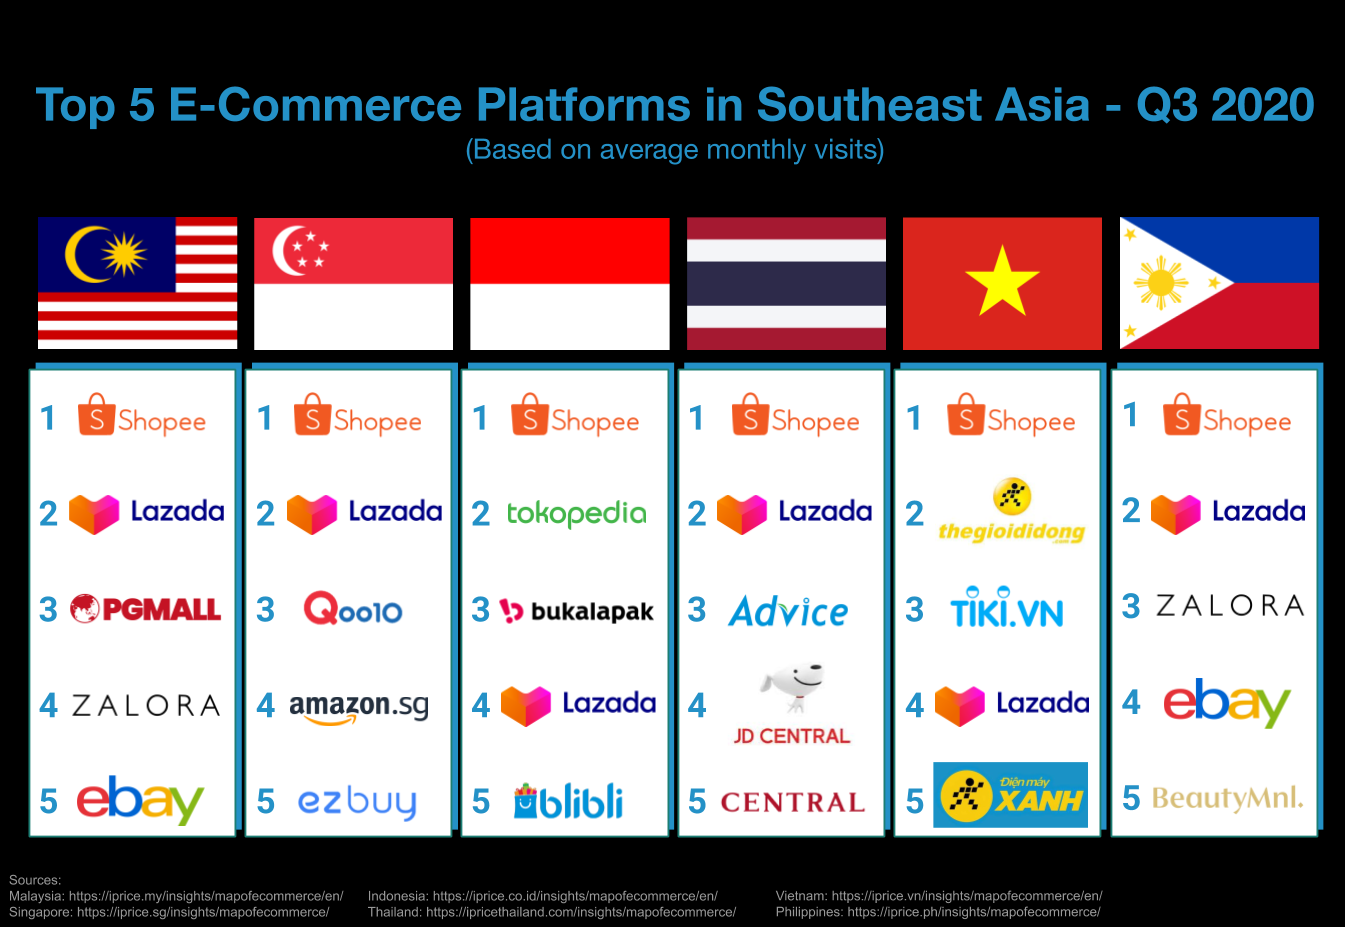 The Top 5 E-Commerce Platforms in Southeast Asia - Q3 2020